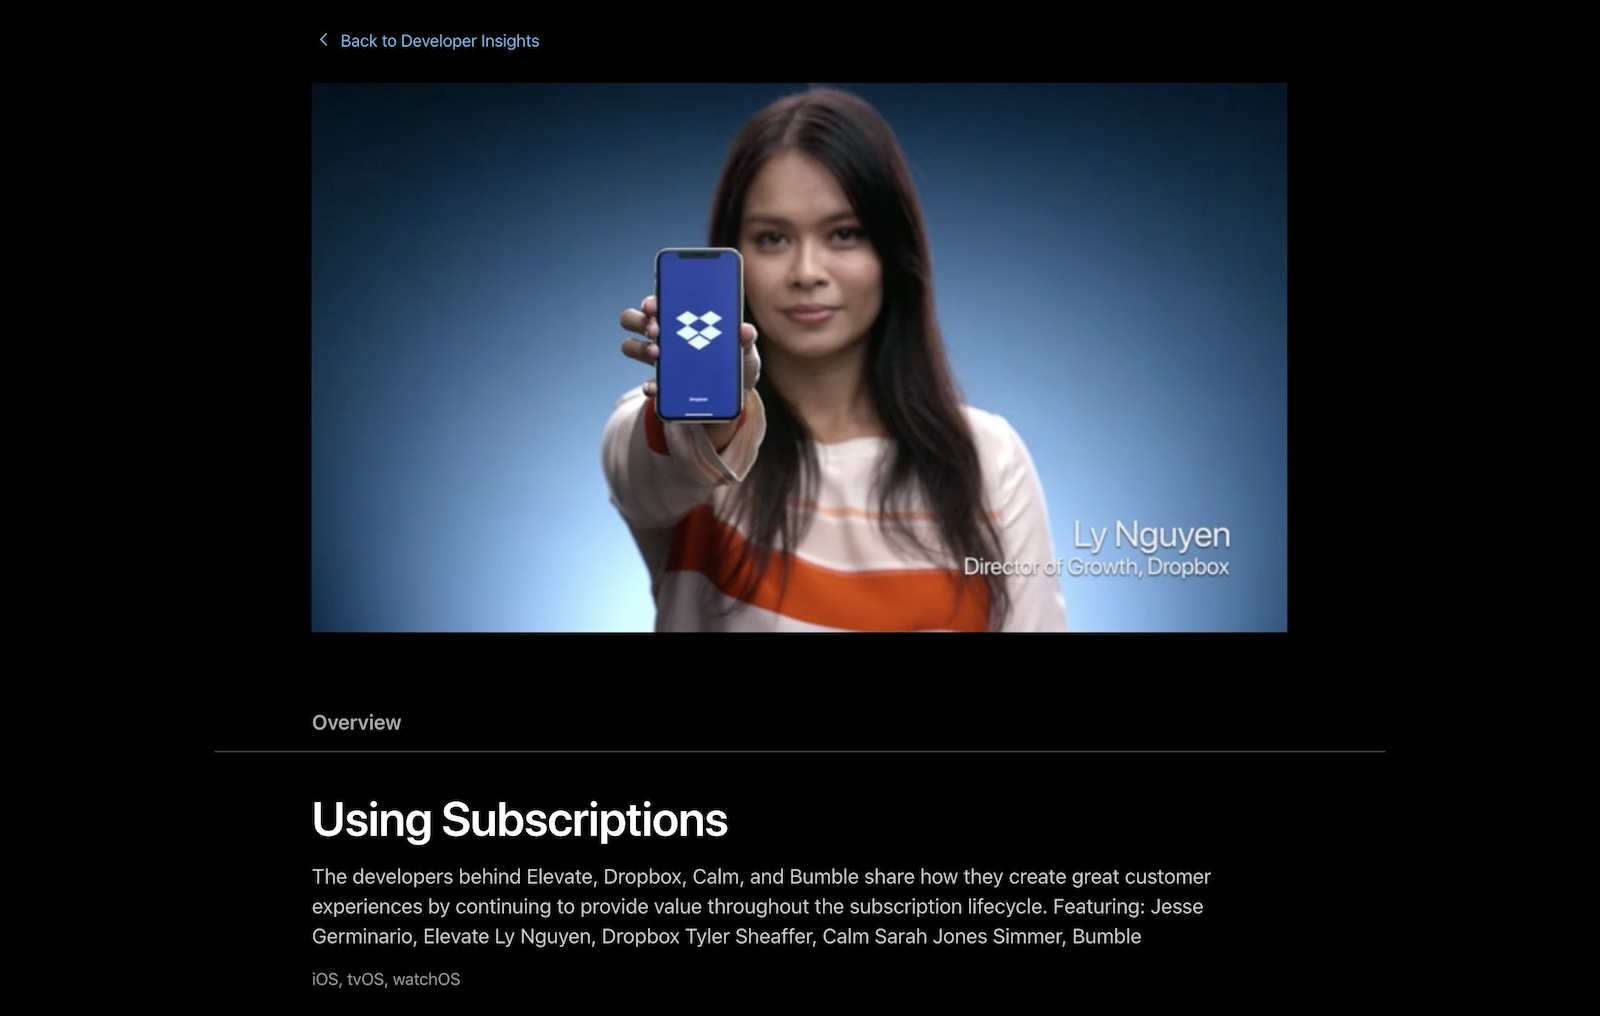 Using-Subscriptions-in-app-store.jpg